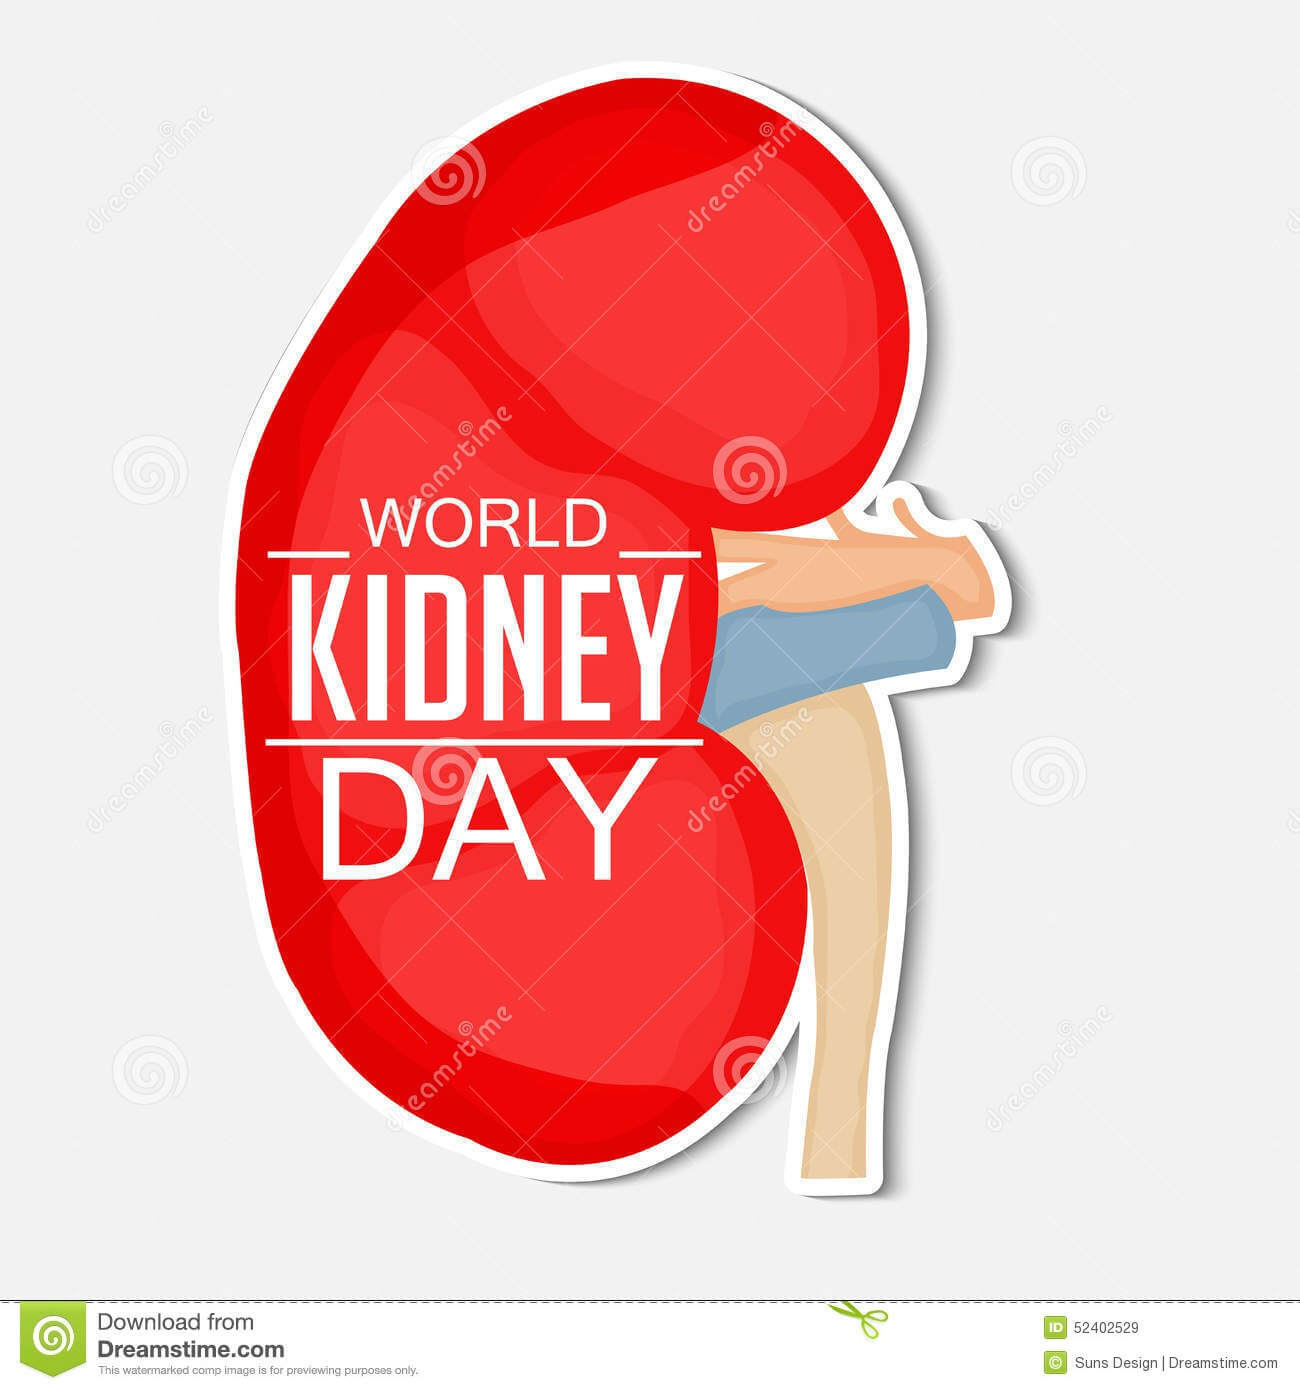 world kidney day illustration